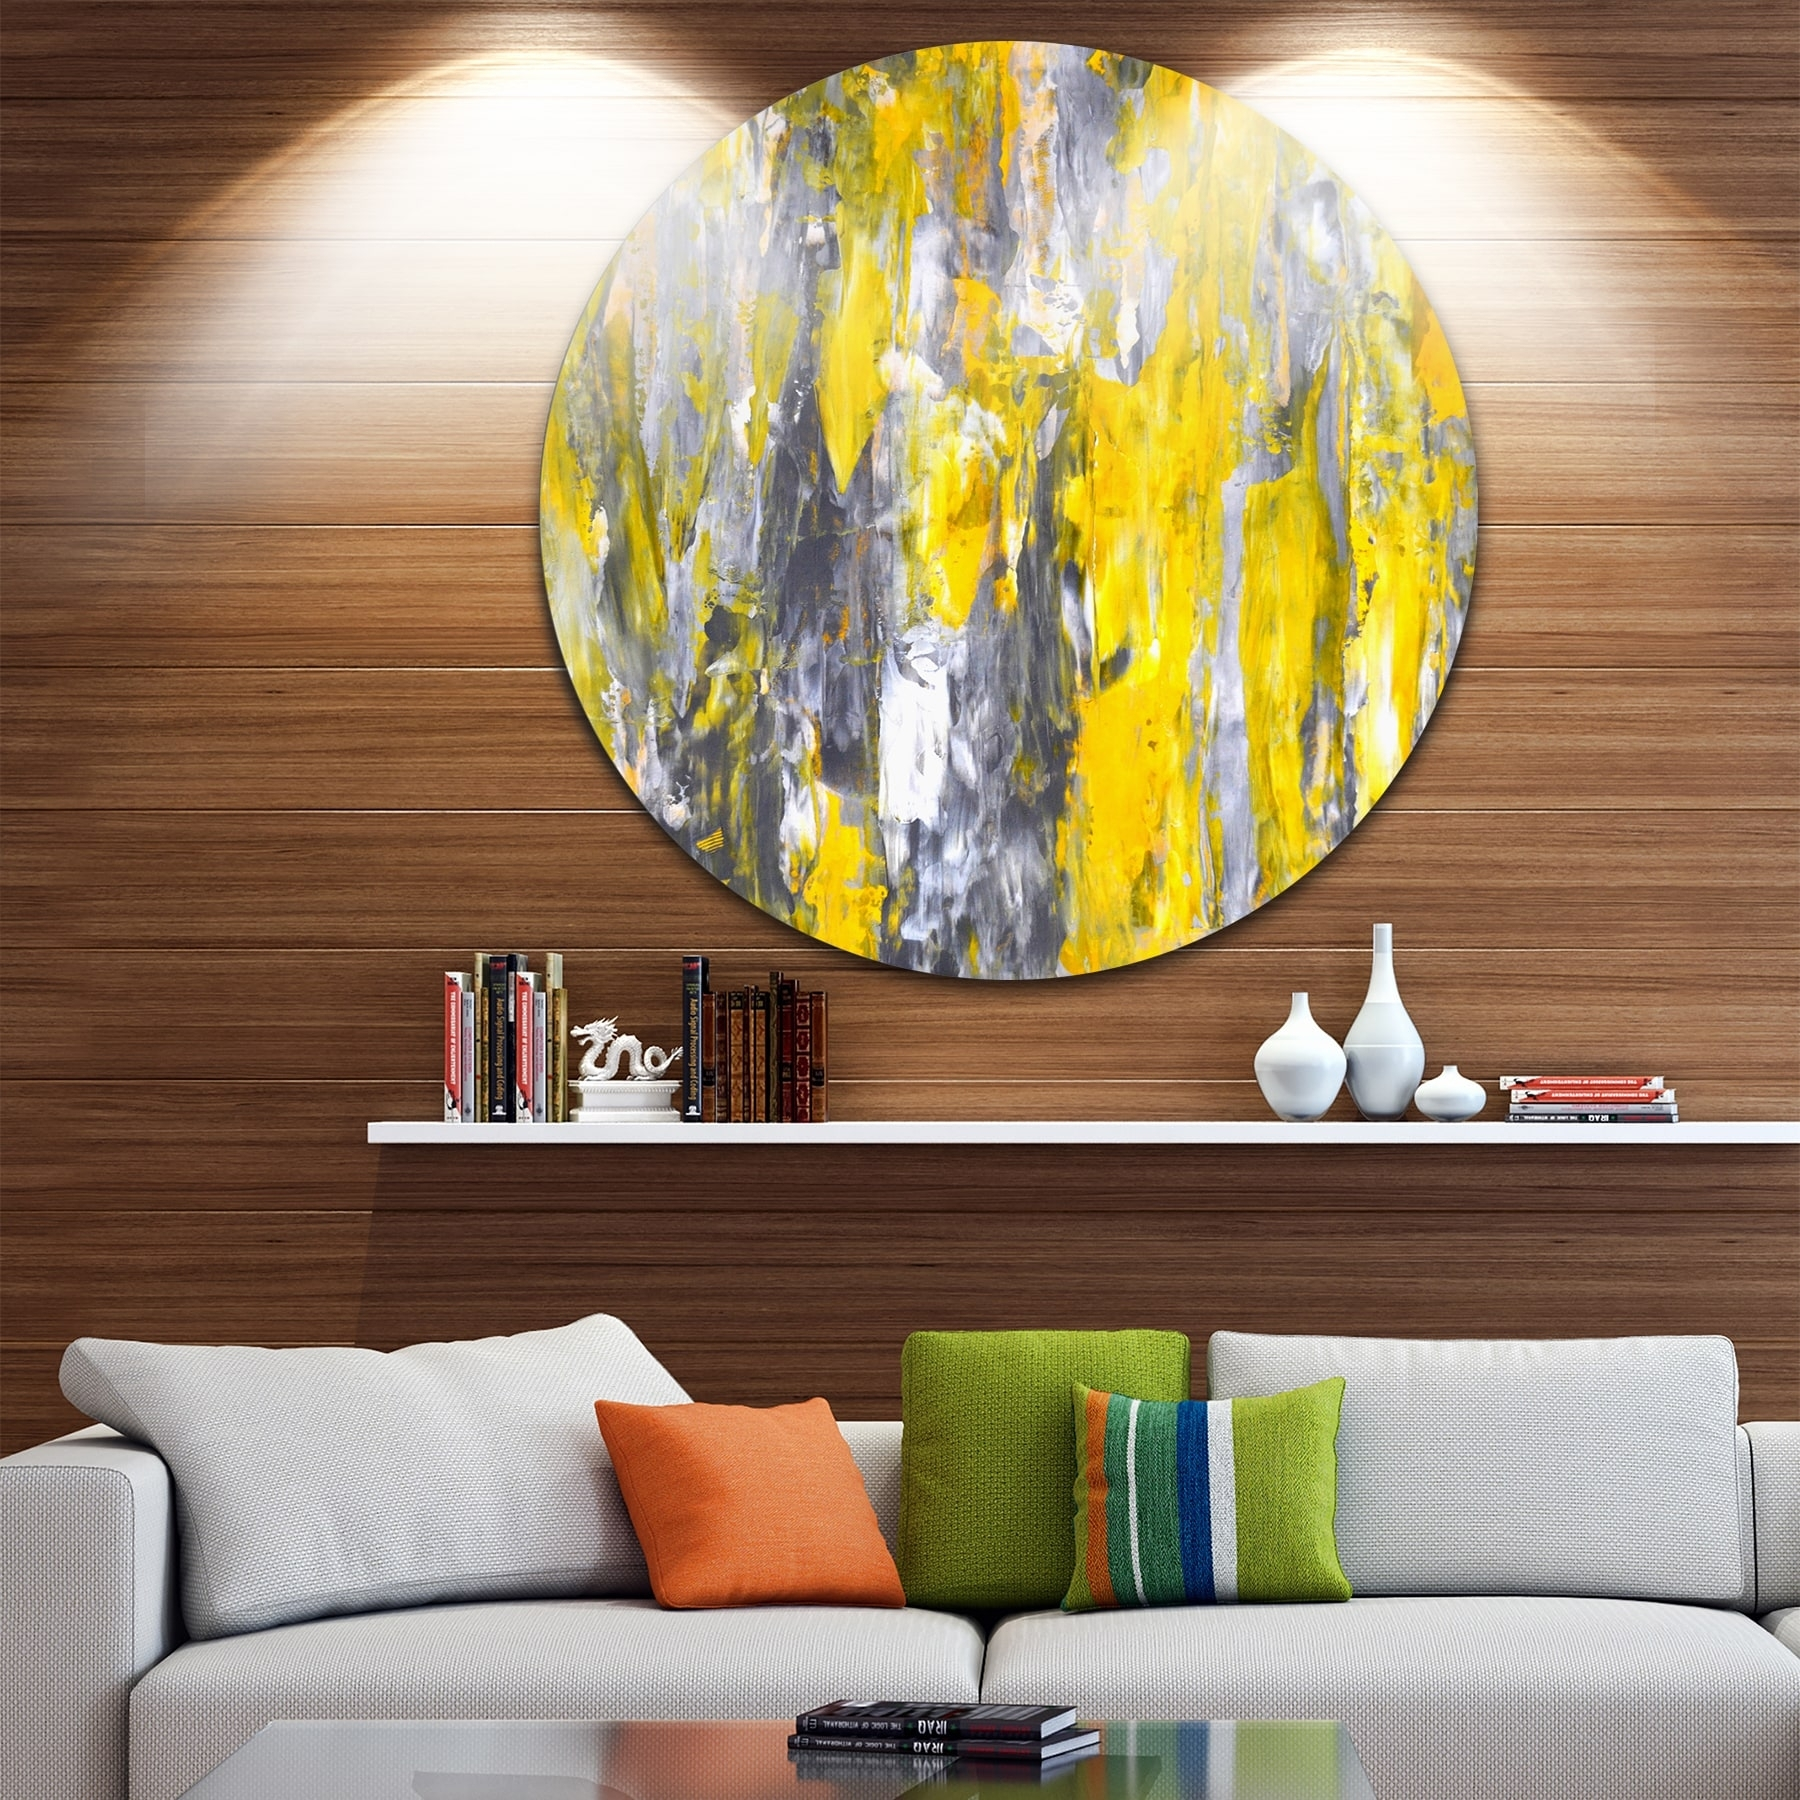 Designart 'grey And Yellow Abstract Pattern' Abstract Glossy Large Intended For Most Recently Released Overstock Abstract Wall Art (View 4 of 20)